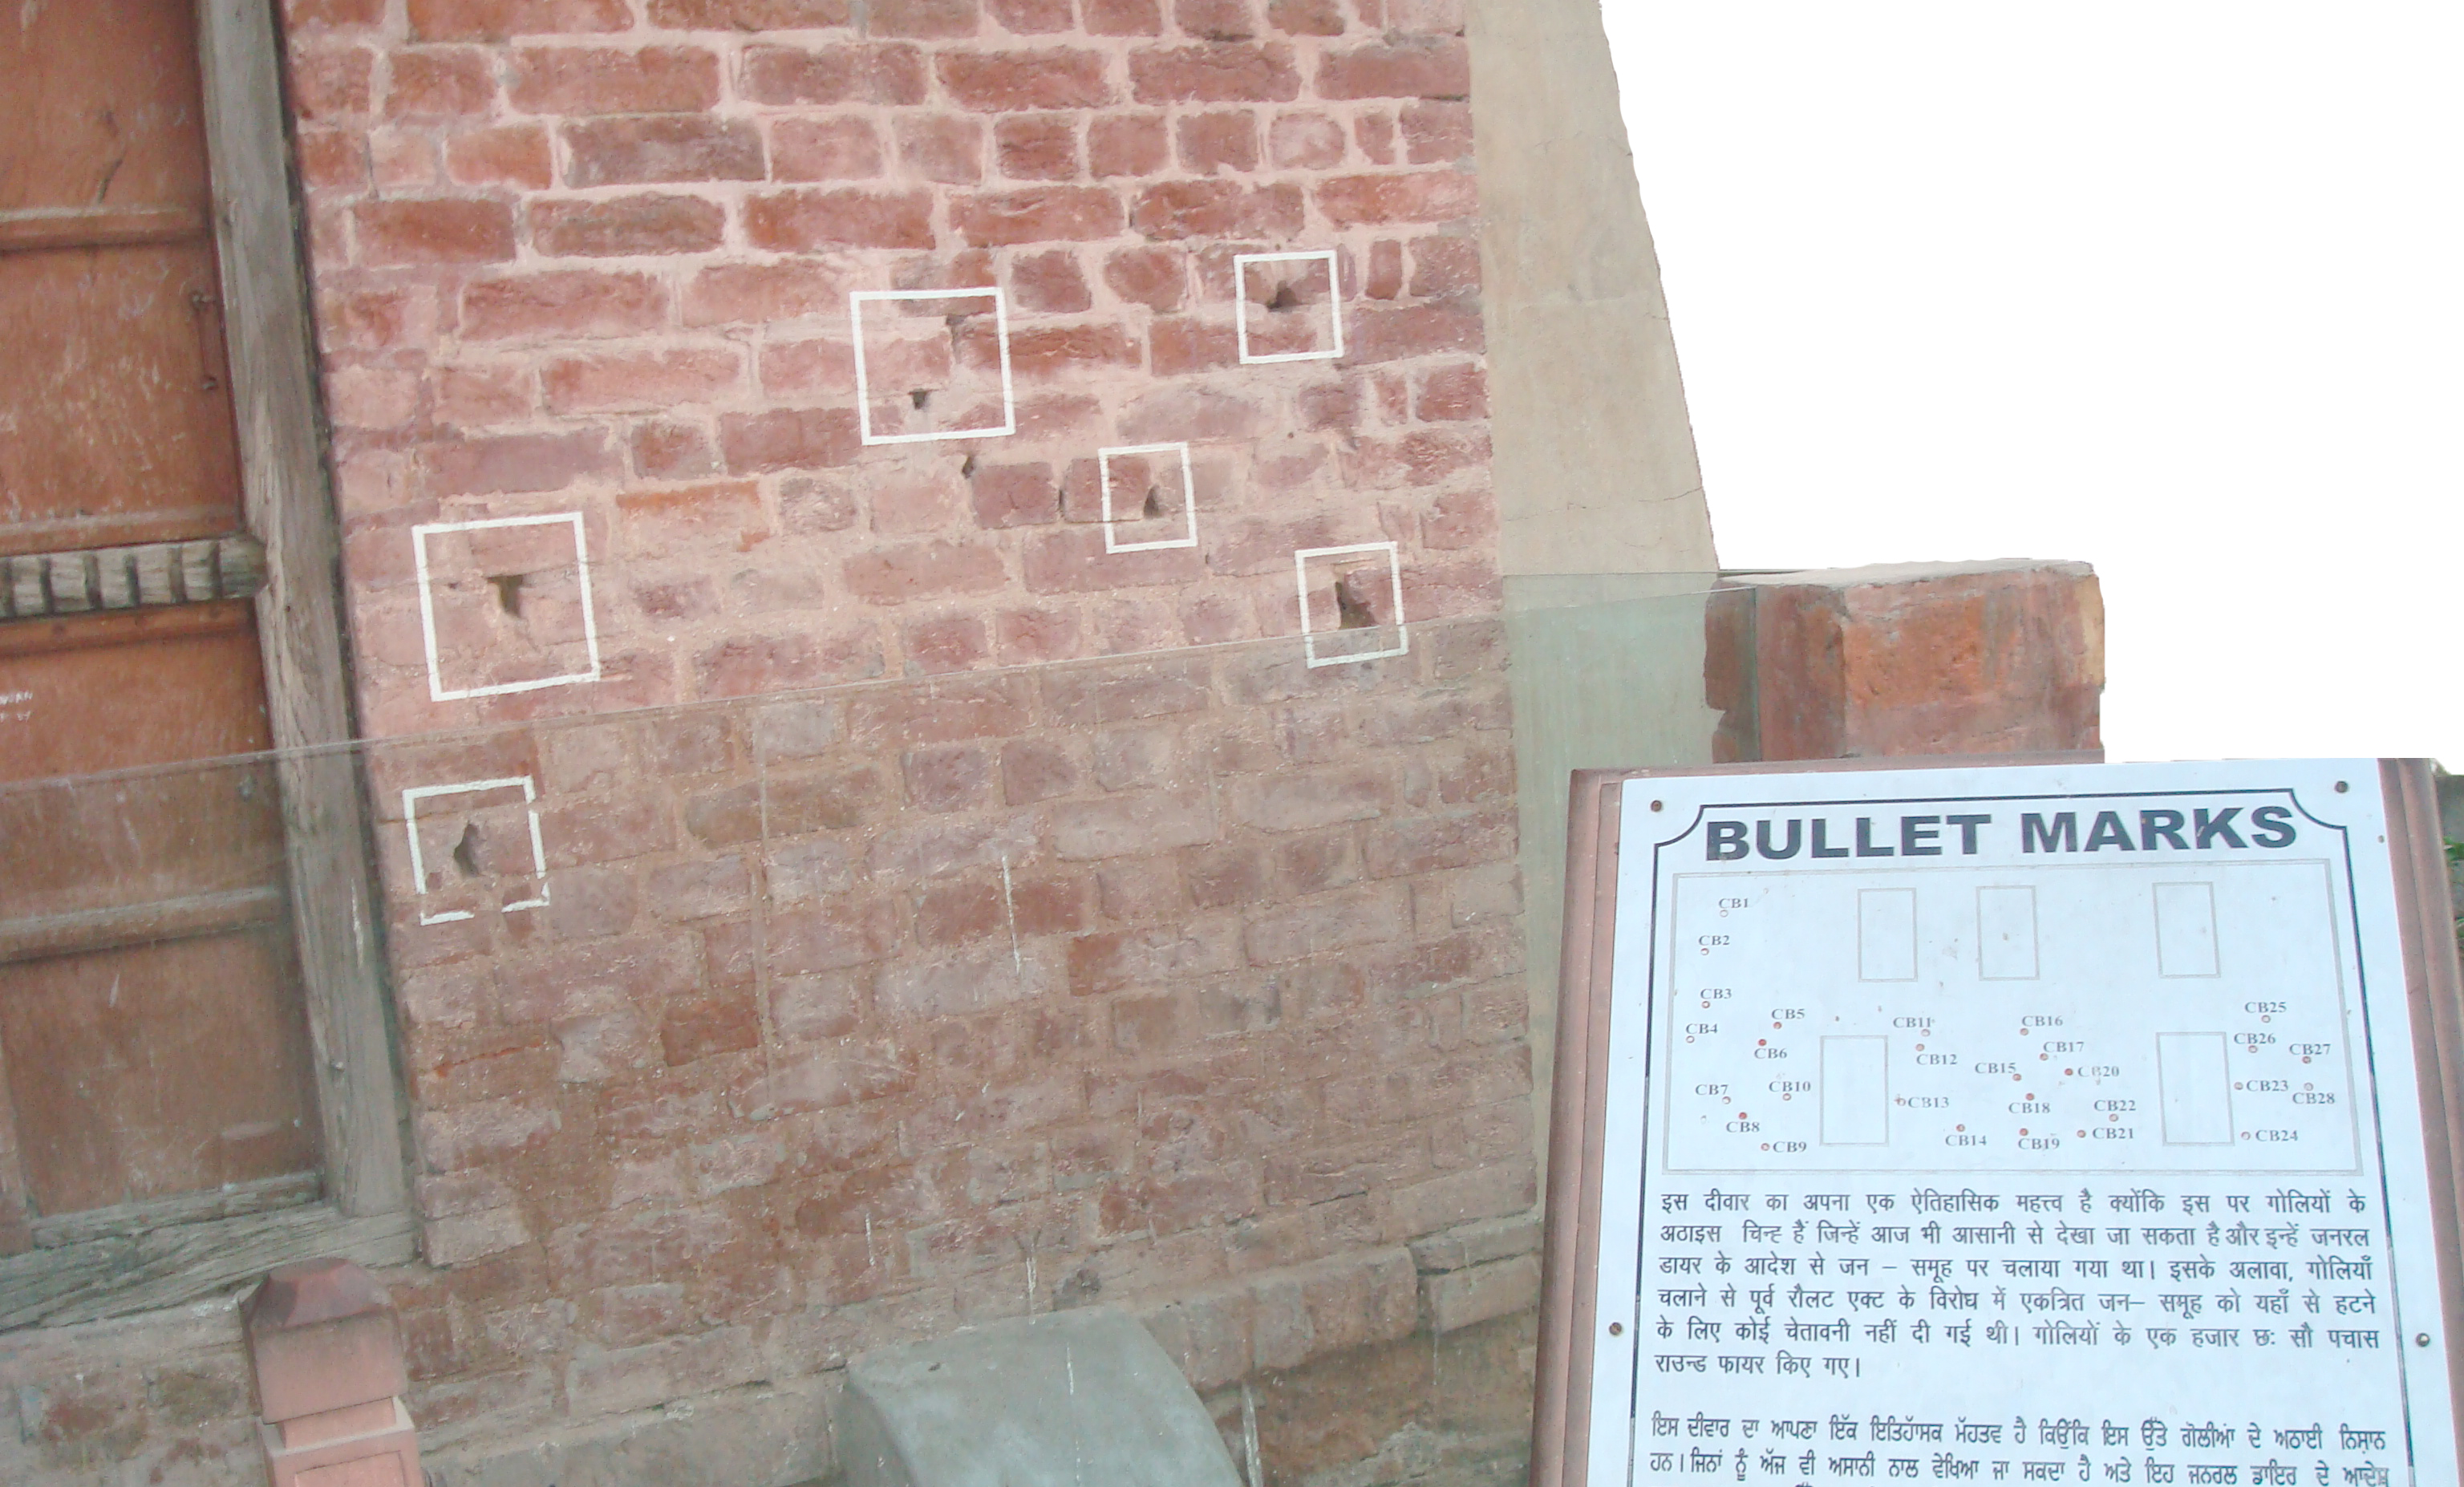 Bullet marks on a wall in Jallianwala Bagh